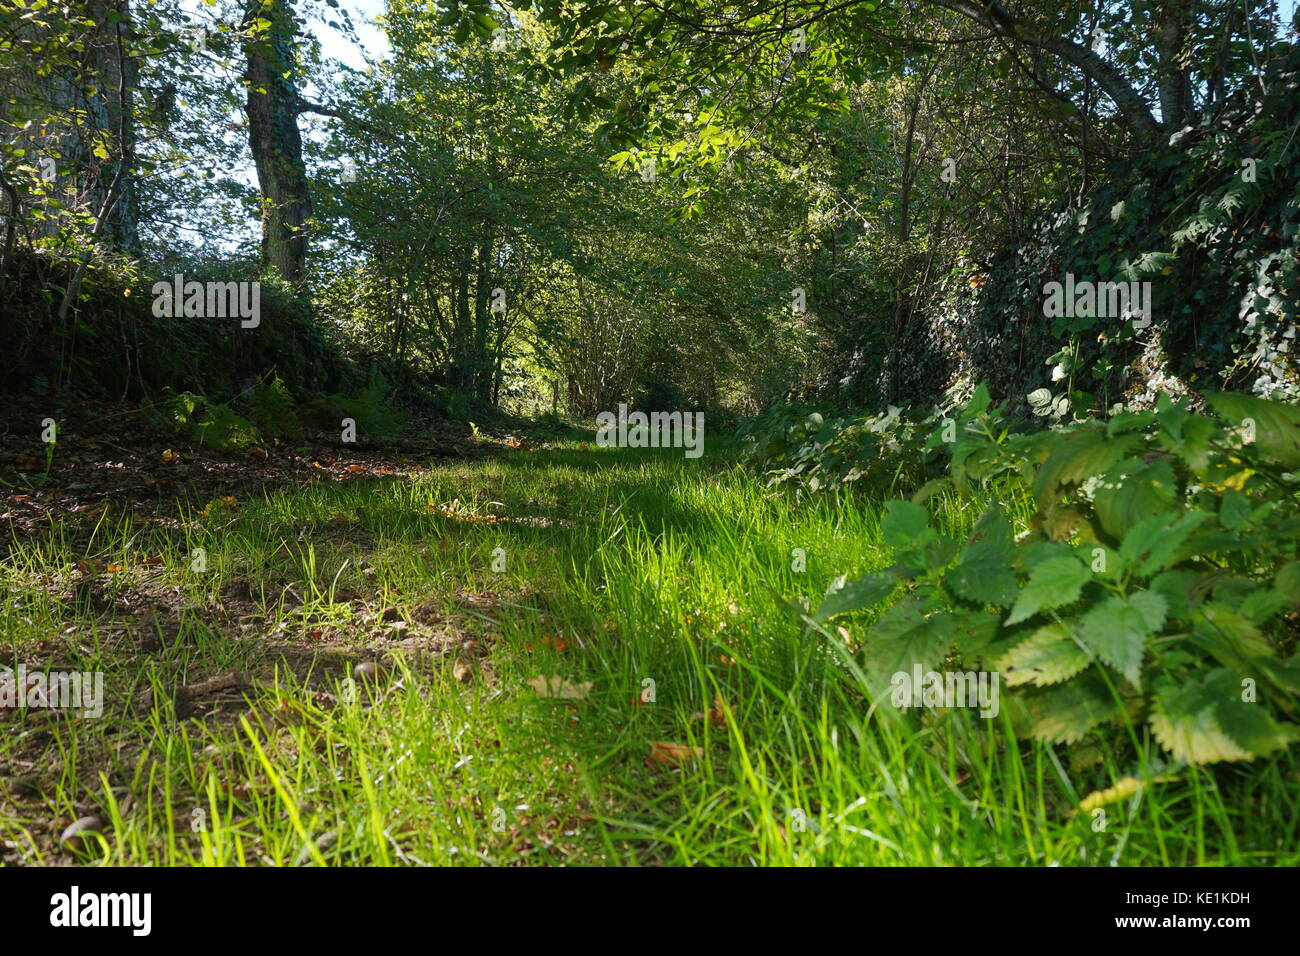 Rural footpath with green vegetation, Mortemart, Haute-Vienne, Limousin, France - Stock Image